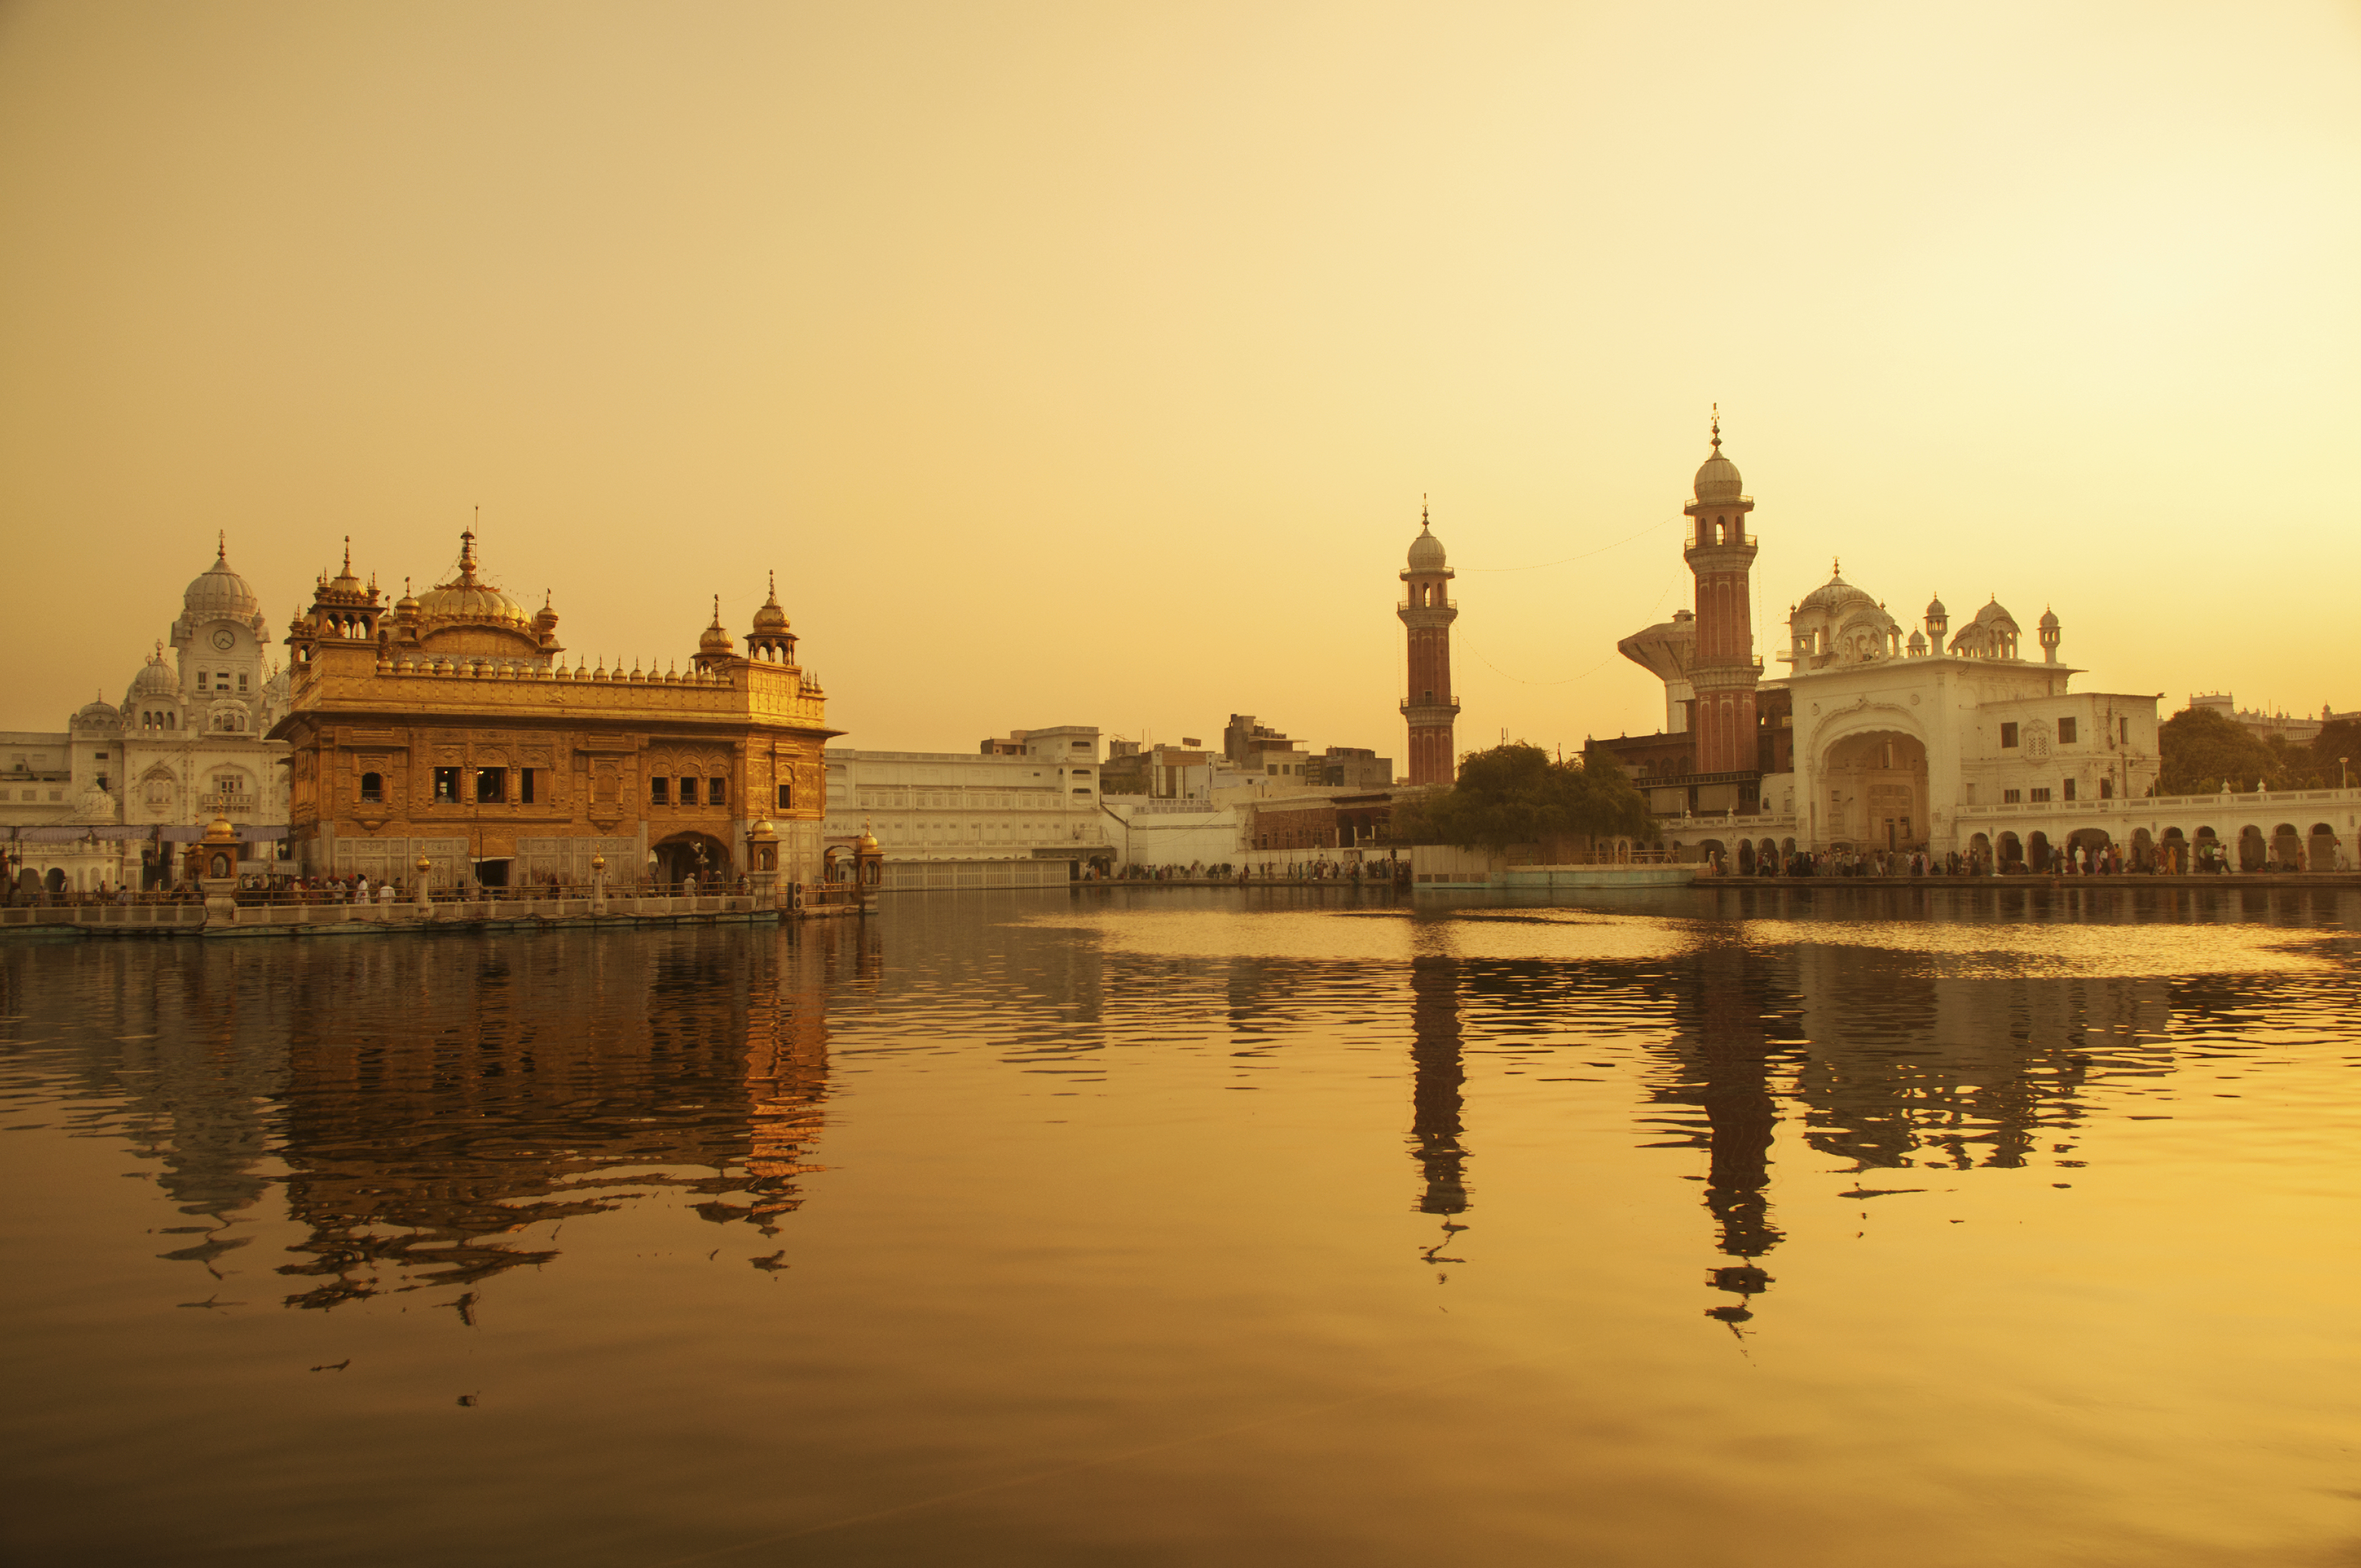 Golden Temple darshan: all you need to know - Skyscanner India